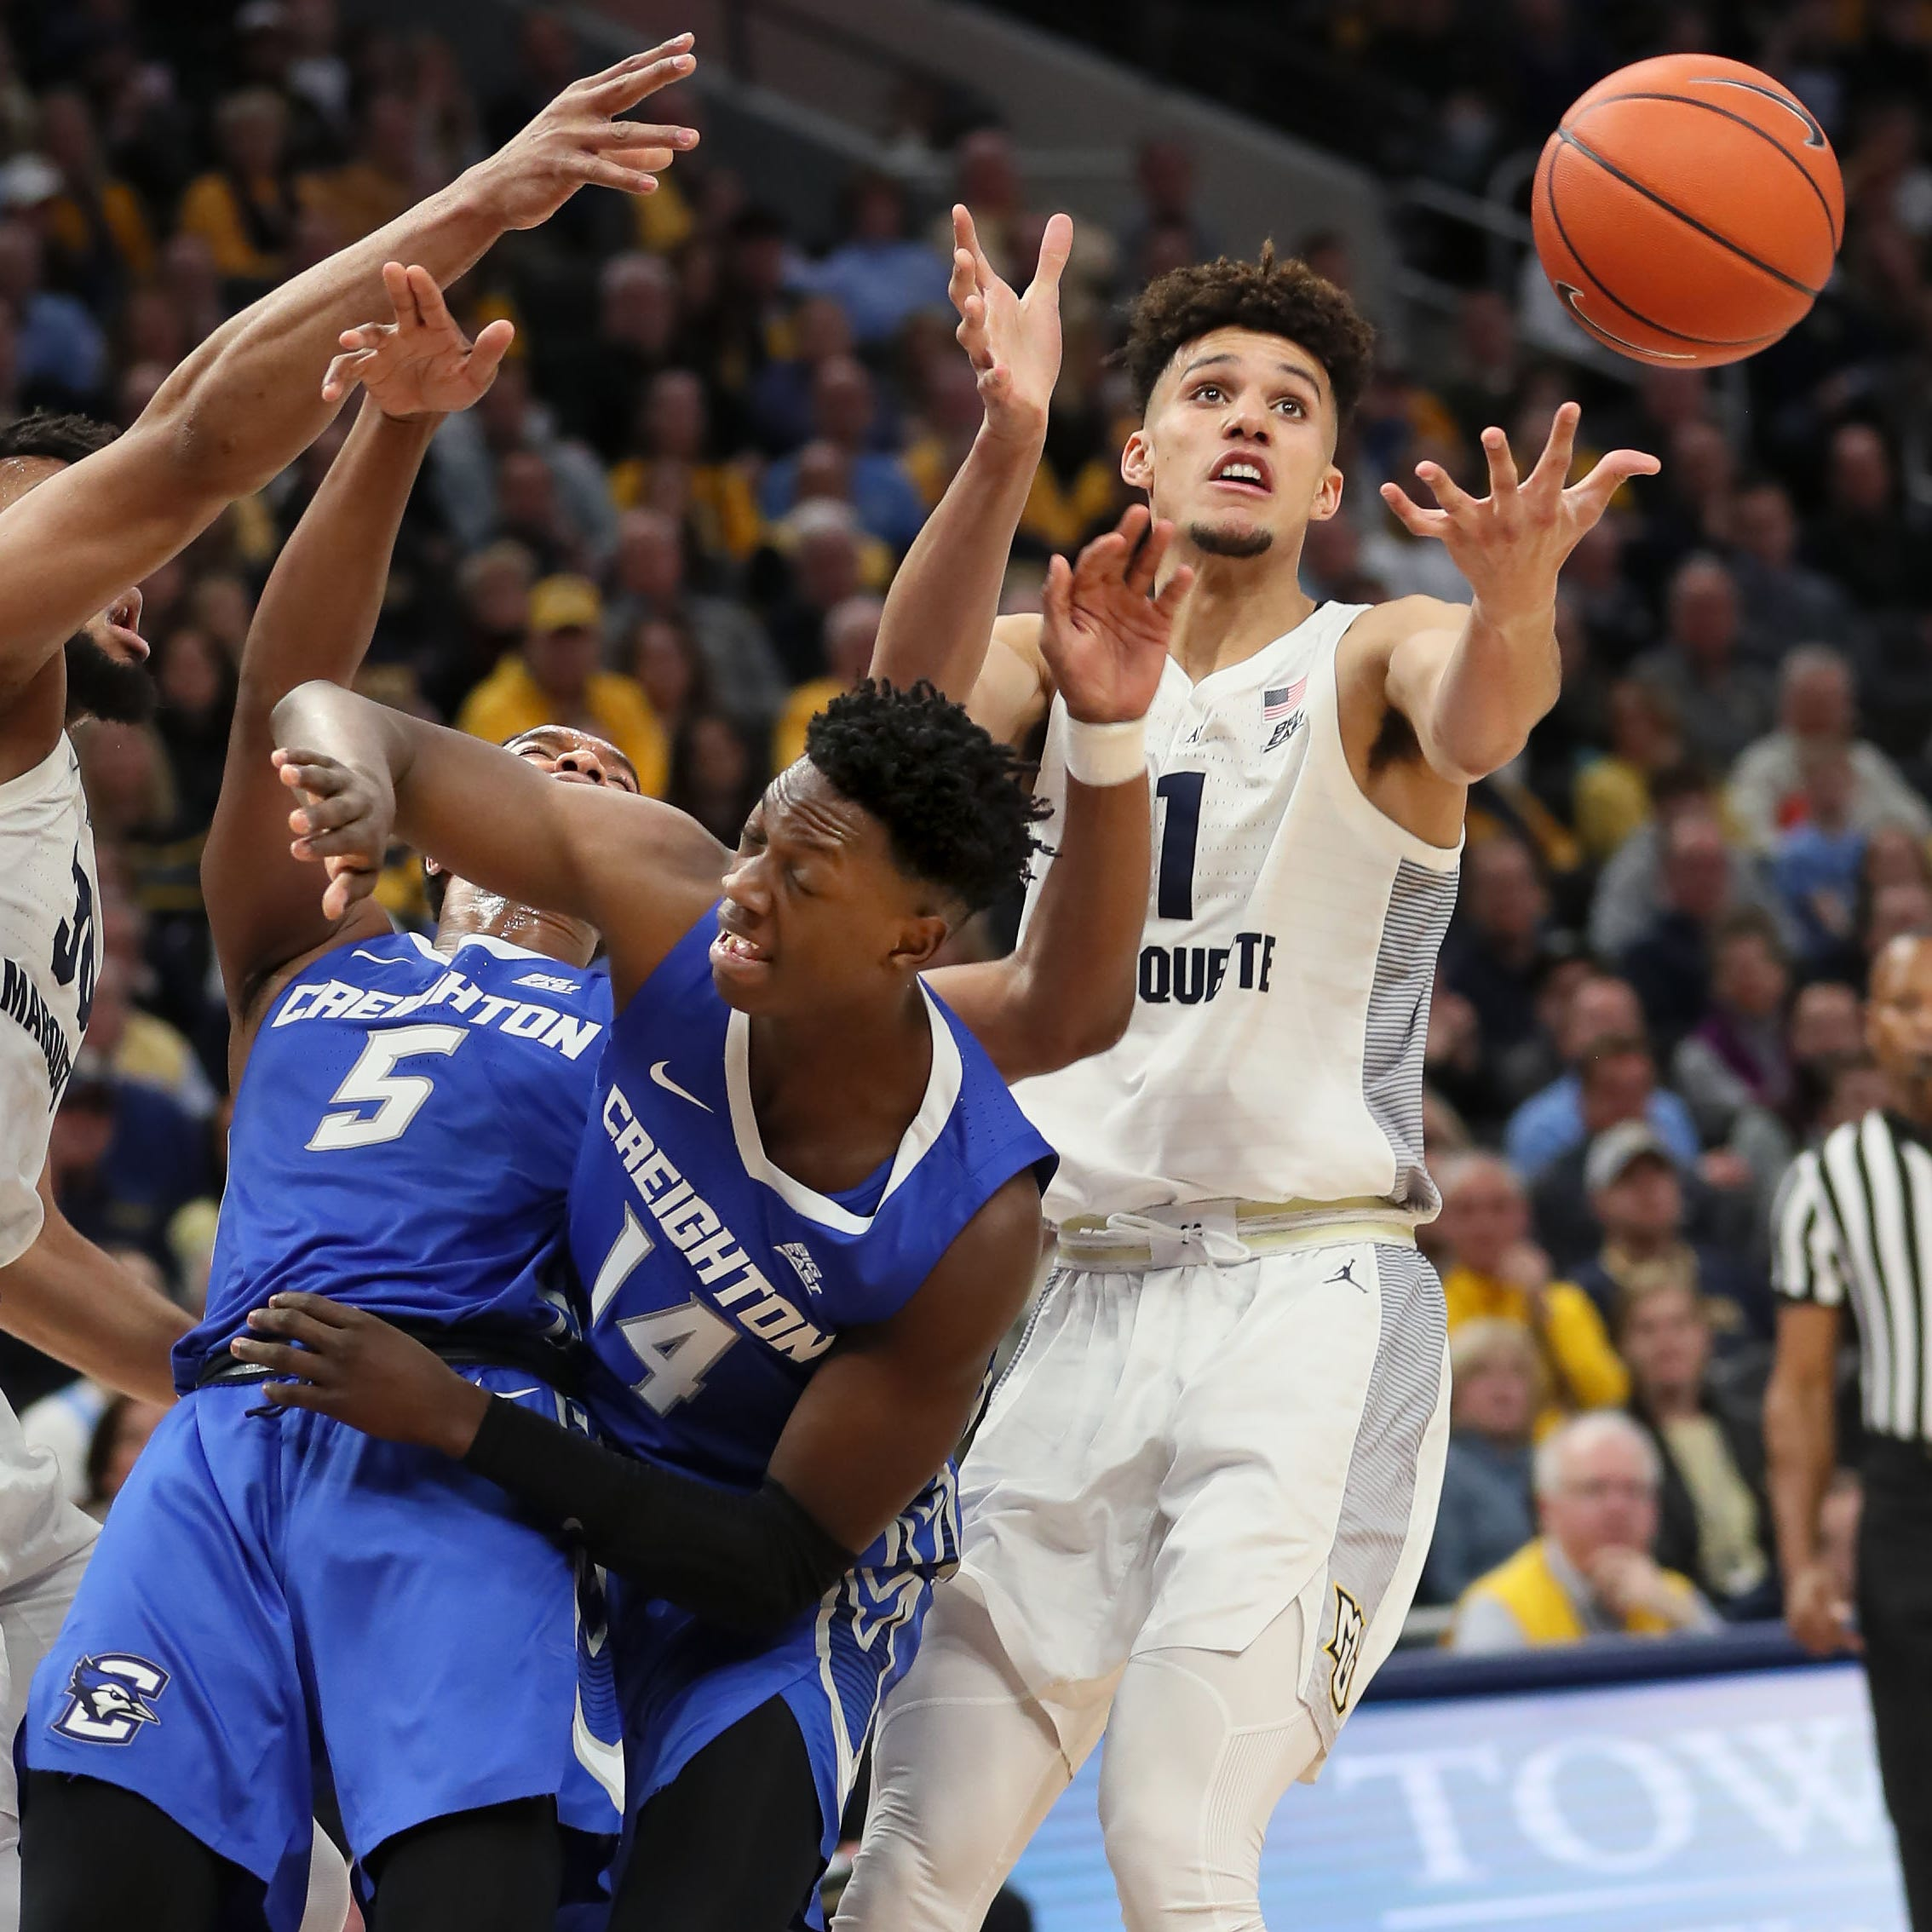 Creighton 66, Marquette 60: 22 turnovers doom Golden Eagles